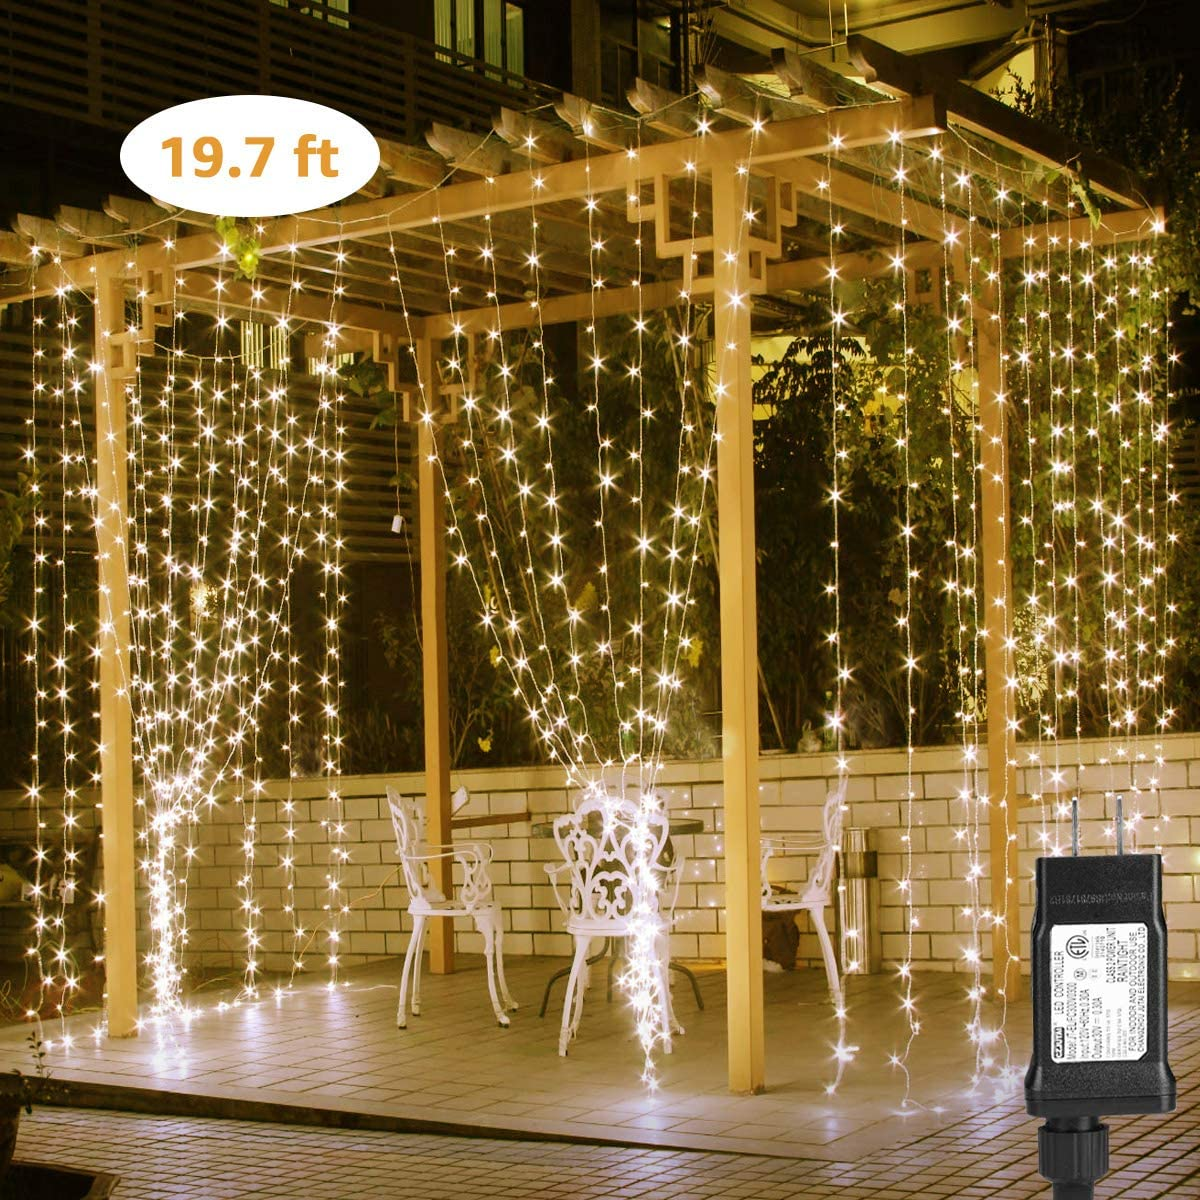 Classier: Buy Lighting EVER LE LED Curtain Lights, 19.7x9.8ft, 594 LED, 8 Modes, Plug in Twinkle Lights, Warm White, Indoor Outdoor Decorative Wall Window String Lights for Bedroom, Party, Wedding Backdrop, Patio Décor and More